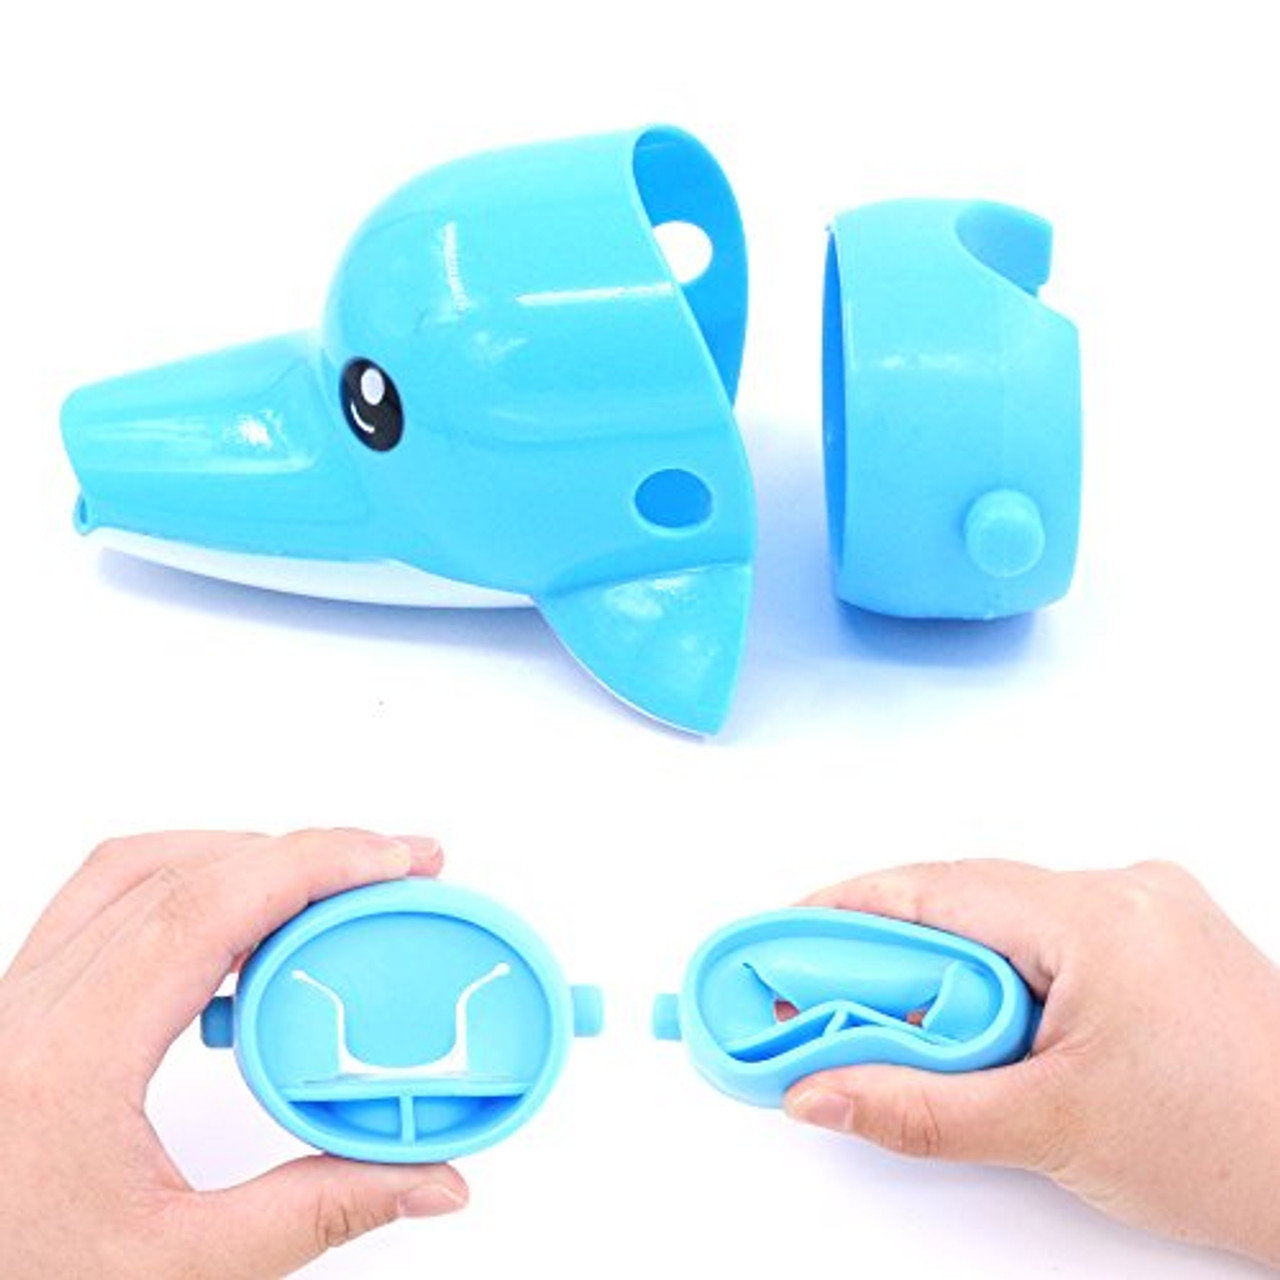 and Rustark 3Pcs Cartoon Faucet Extender Sink Handle Extender for Toddler Baby